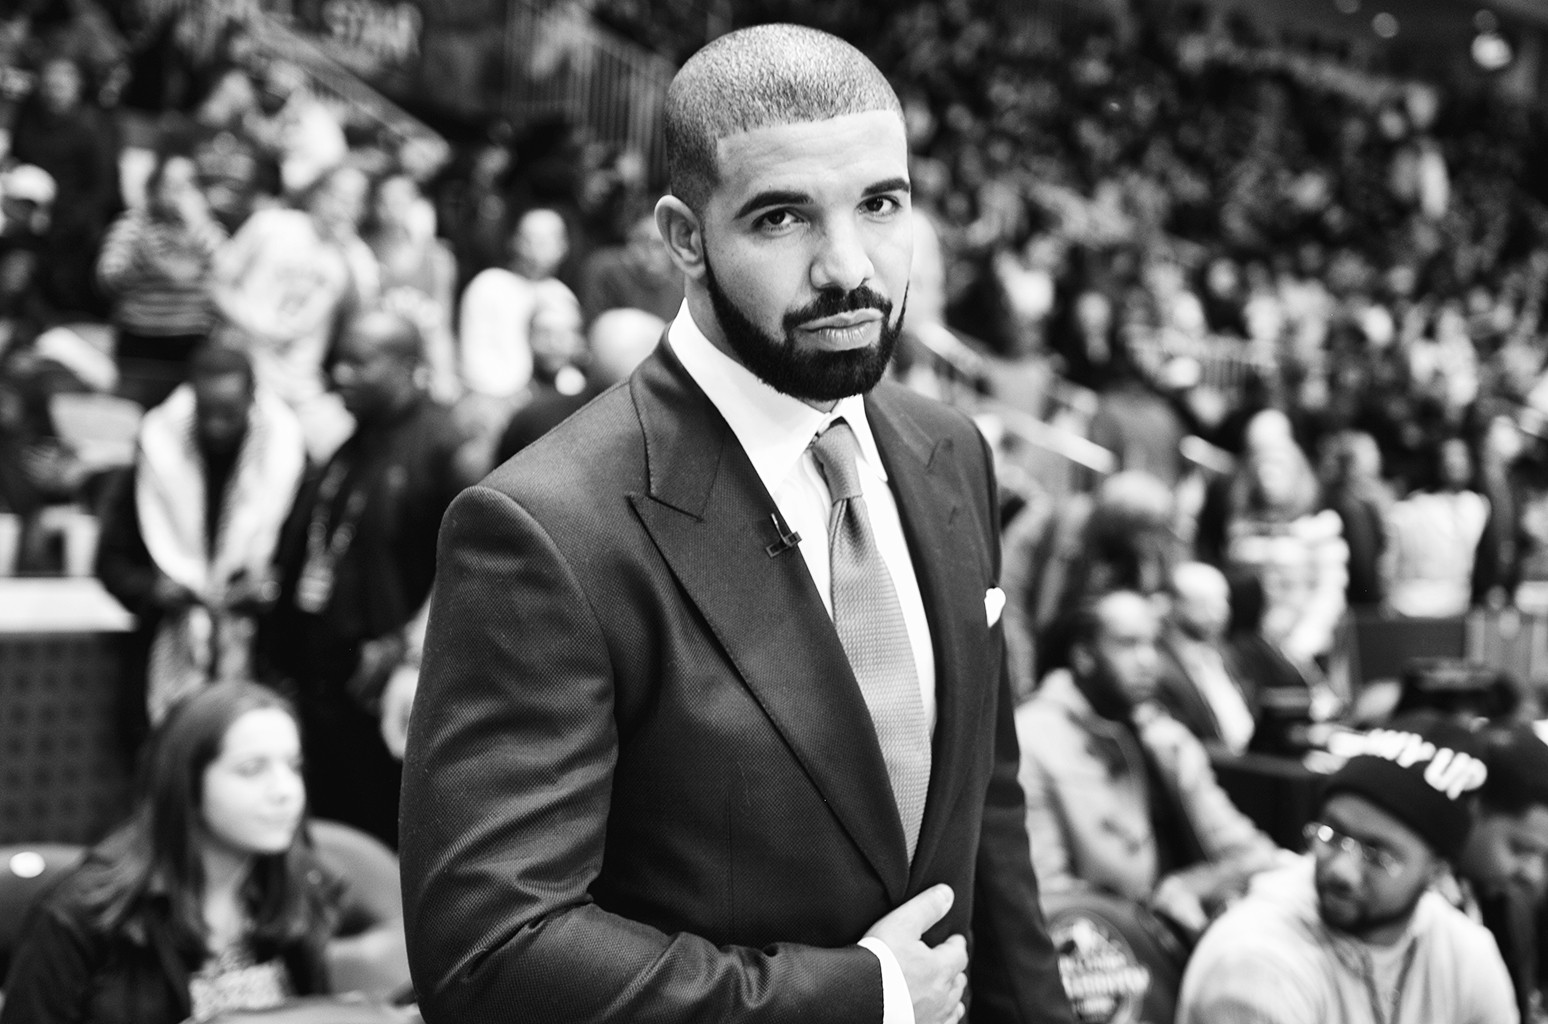 Drake attends the NBA All-Star Celebrity Game at Ricoh Coliseum in Toronto on Feb. 12, 2016.